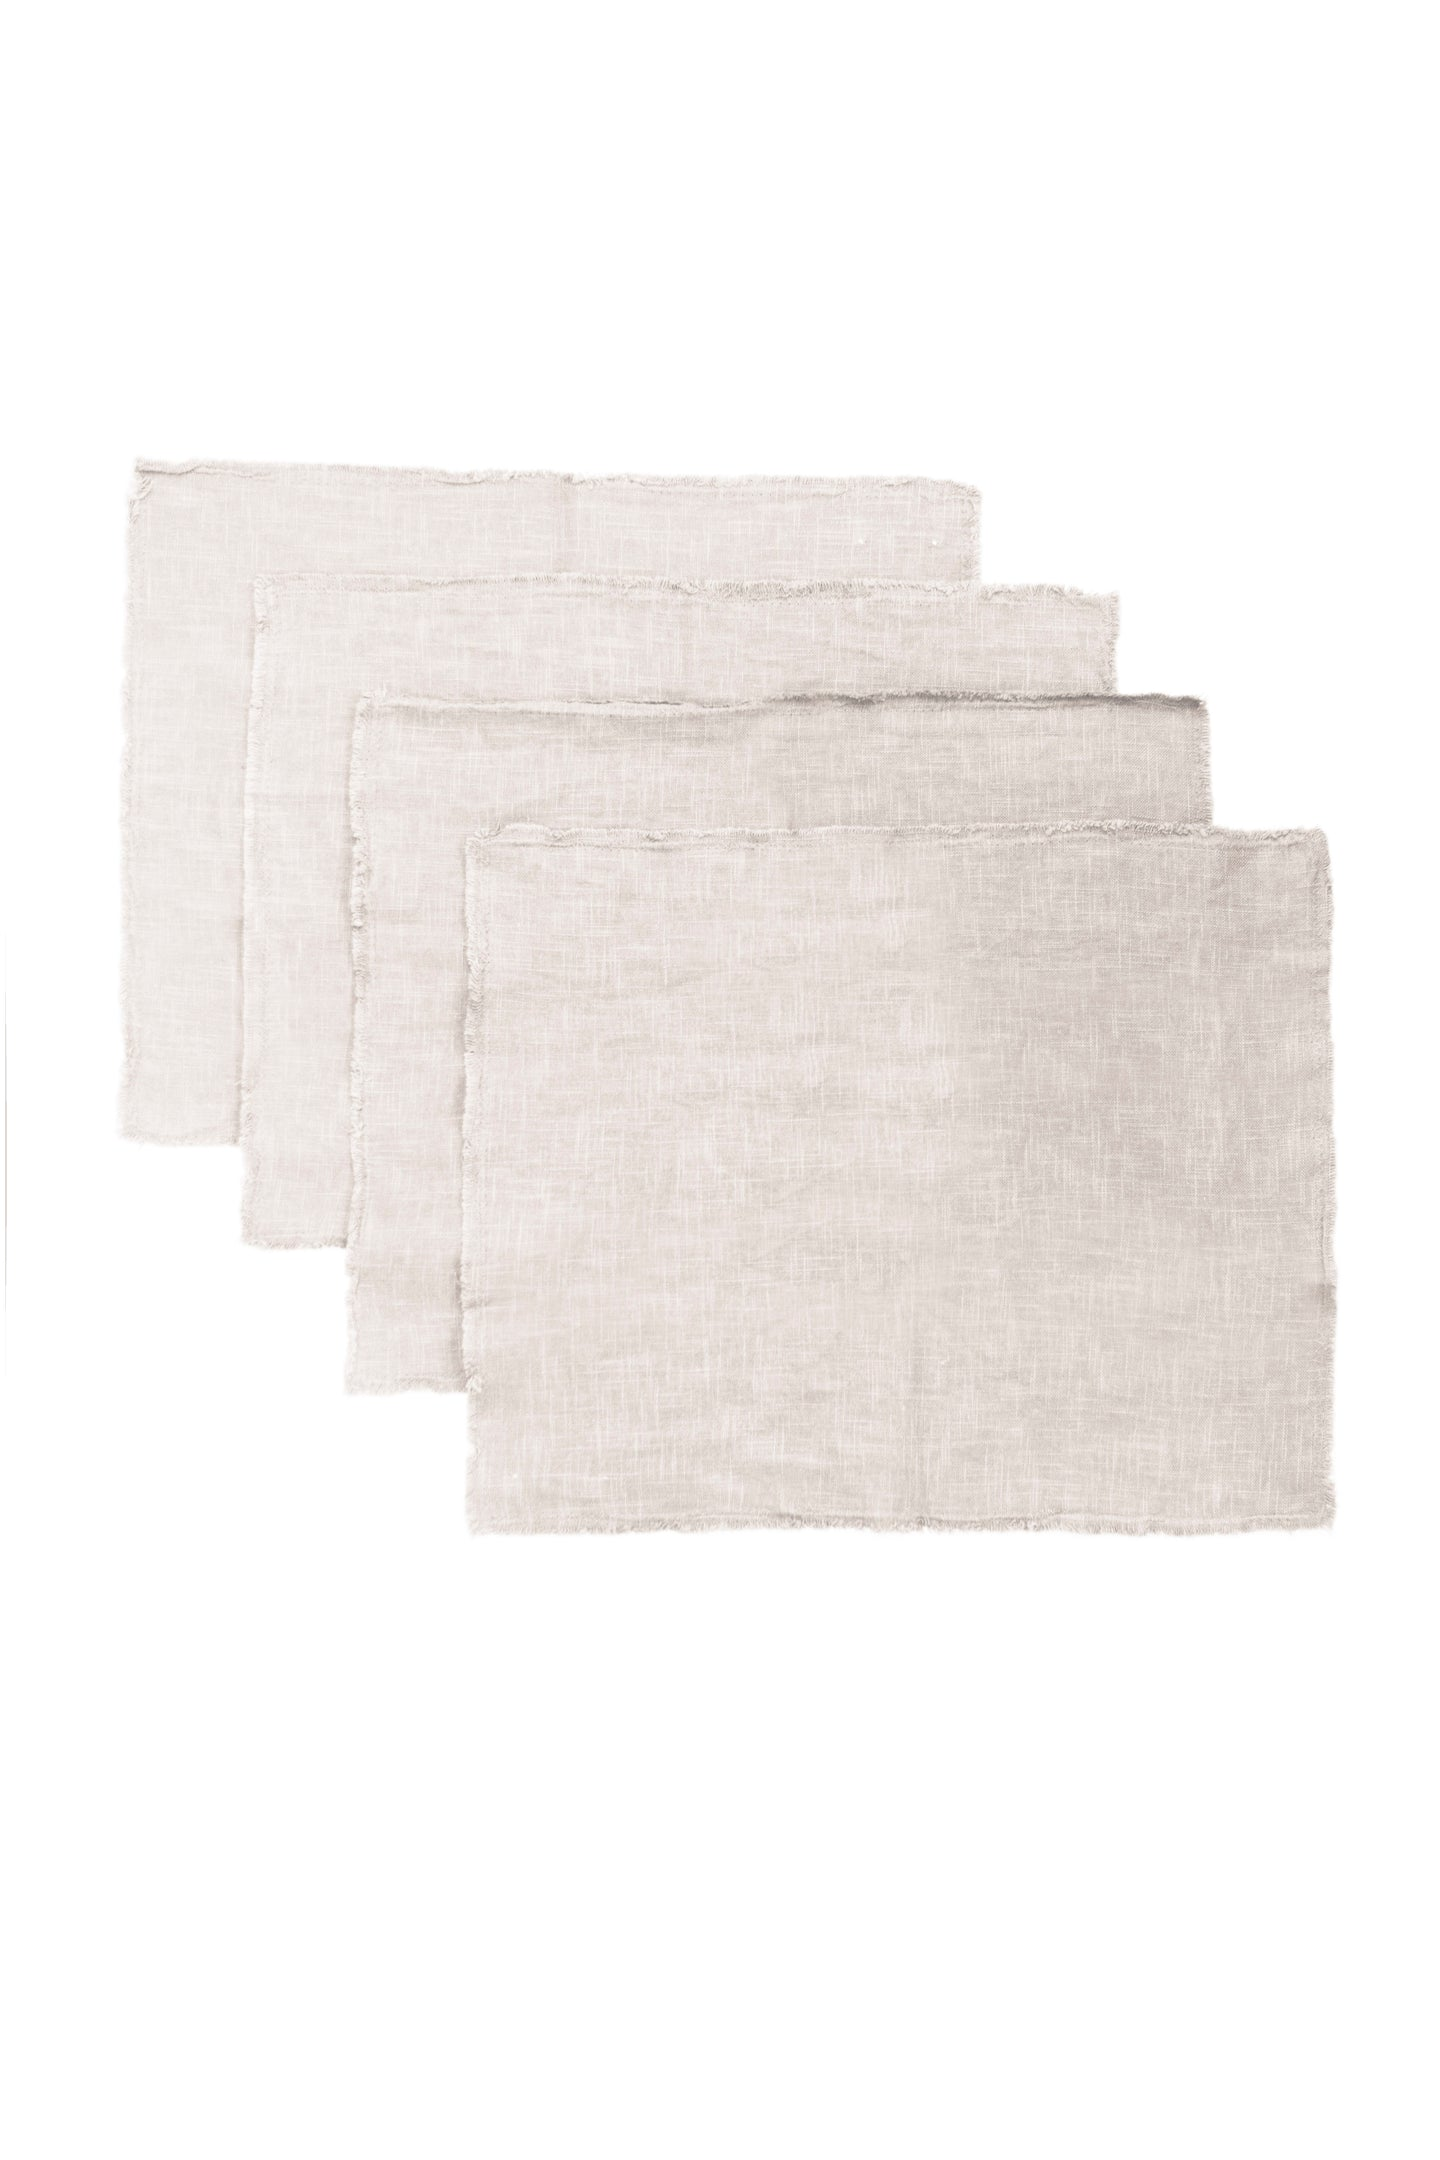 GIANNETTI NATURAL LINEN PLACEMATS (SET OF 4)